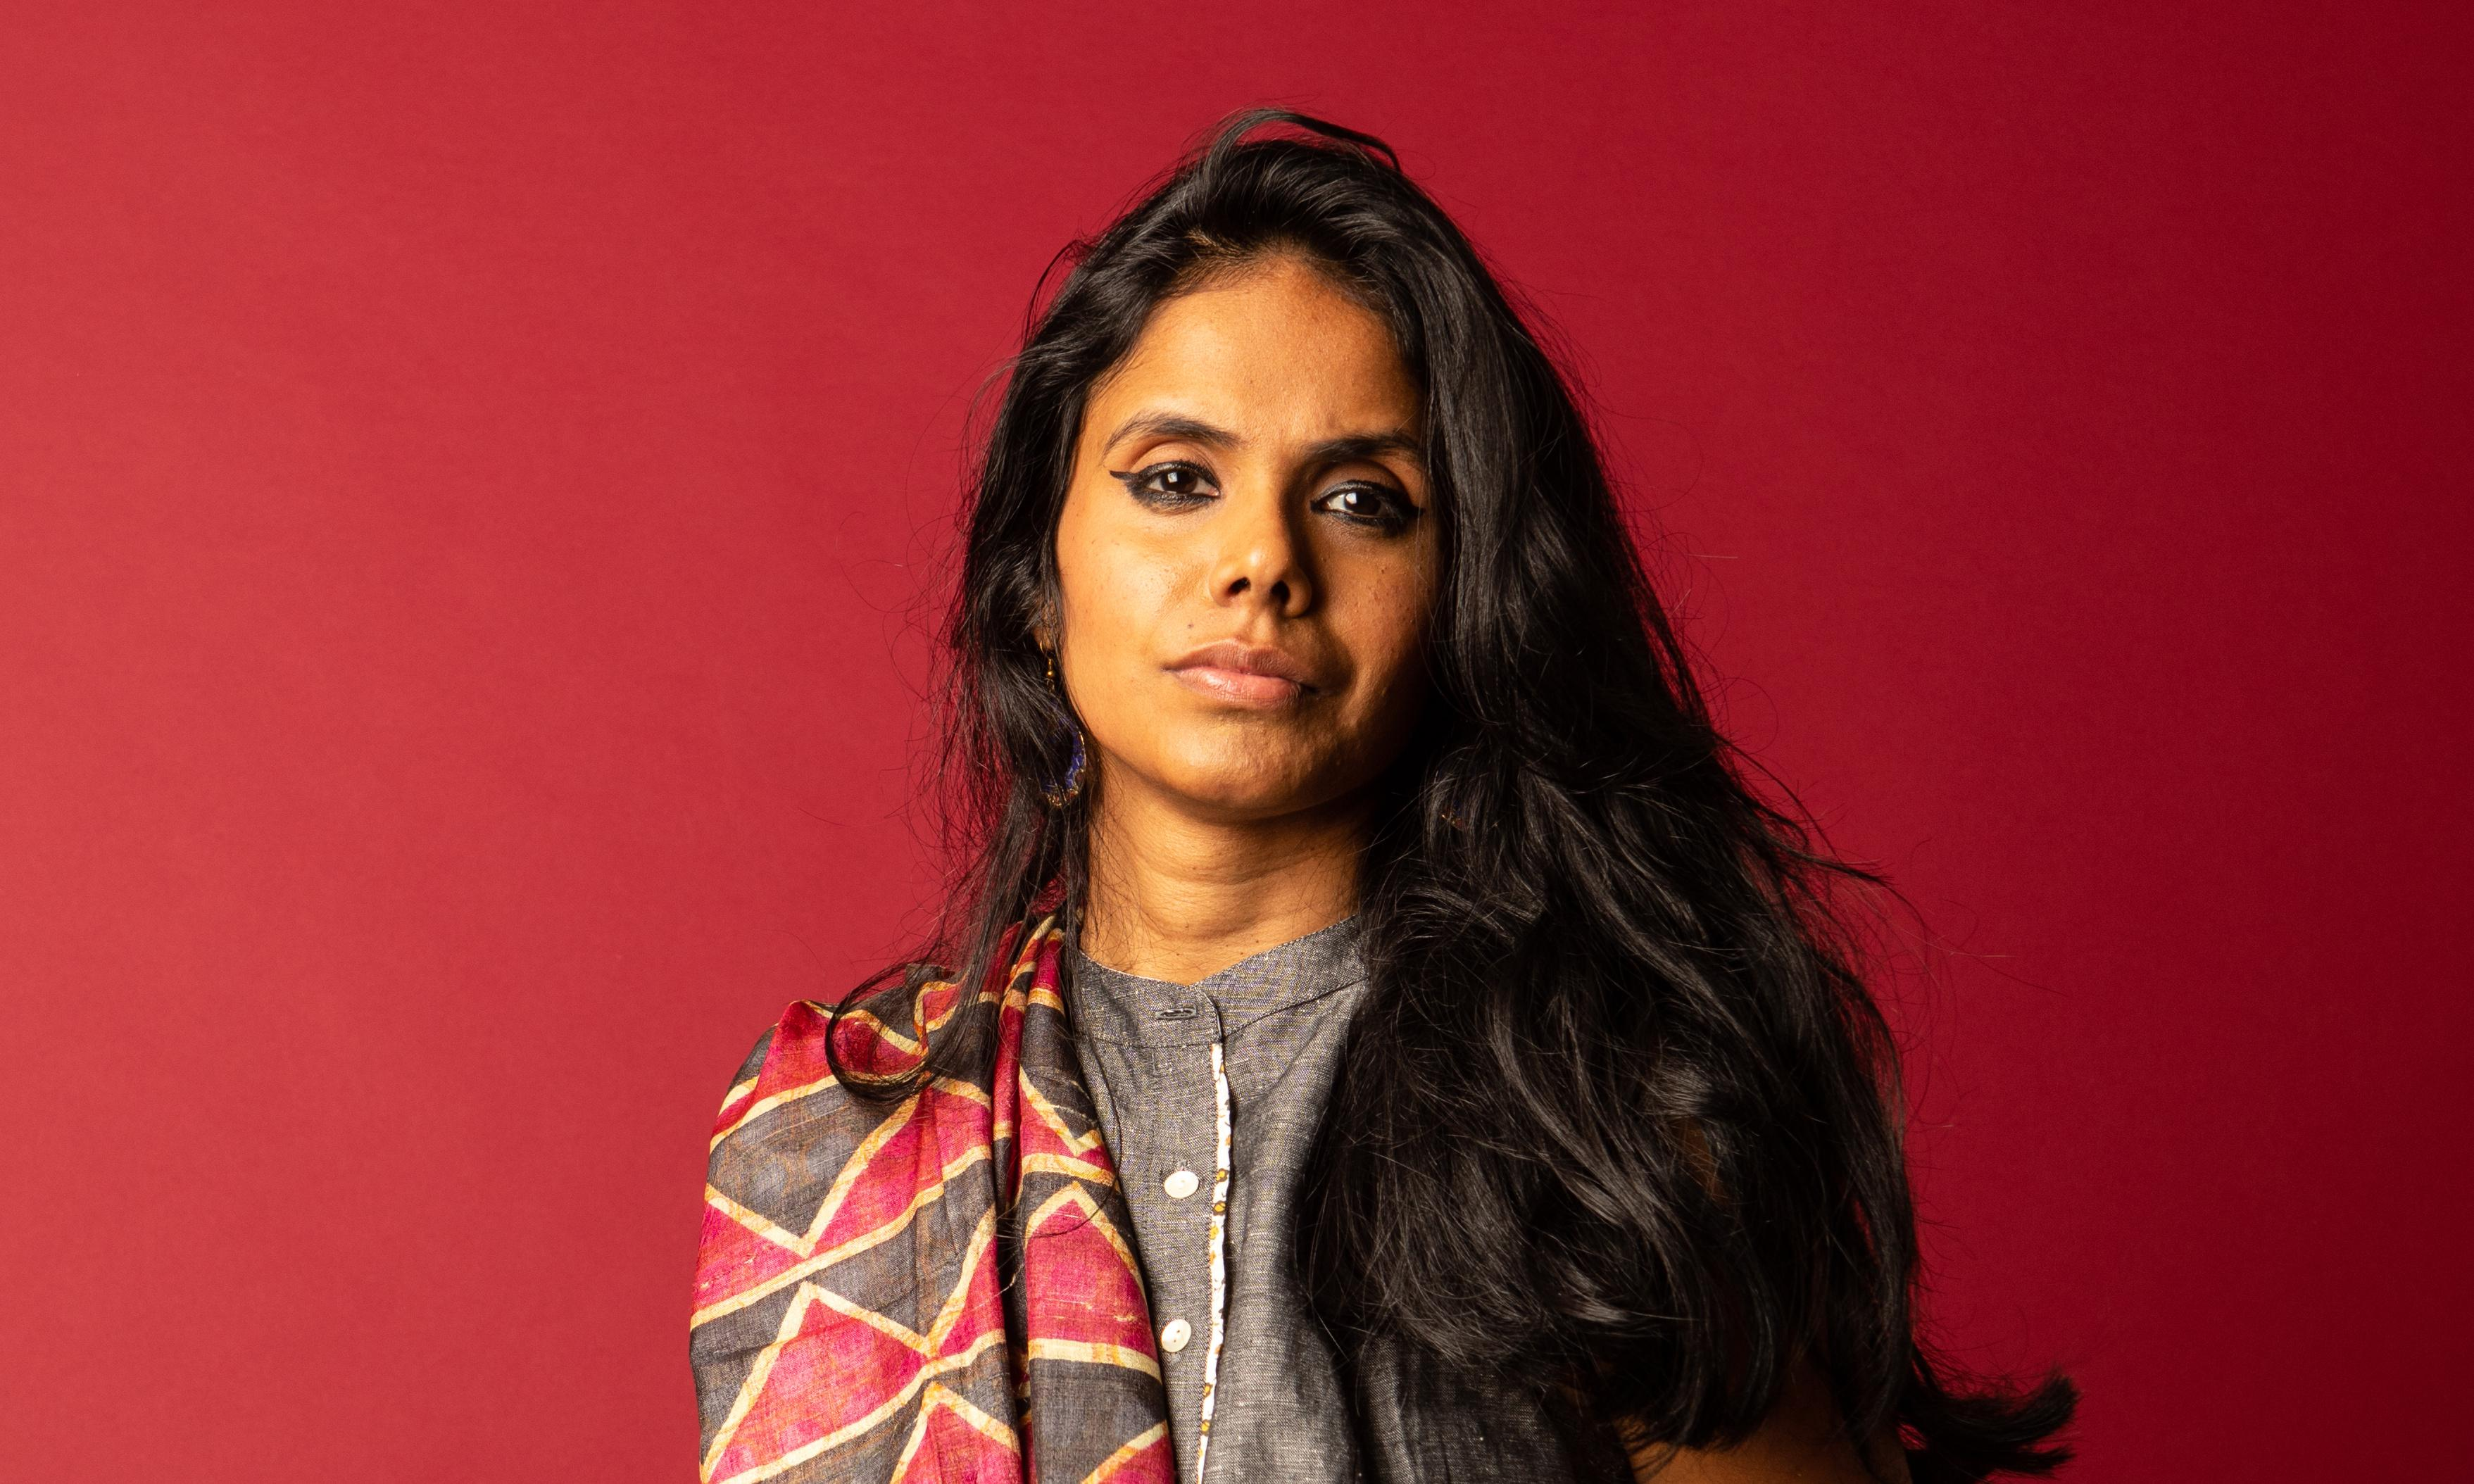 Exquisite Cadavers by Meena Kandasamy review – writing in the margins